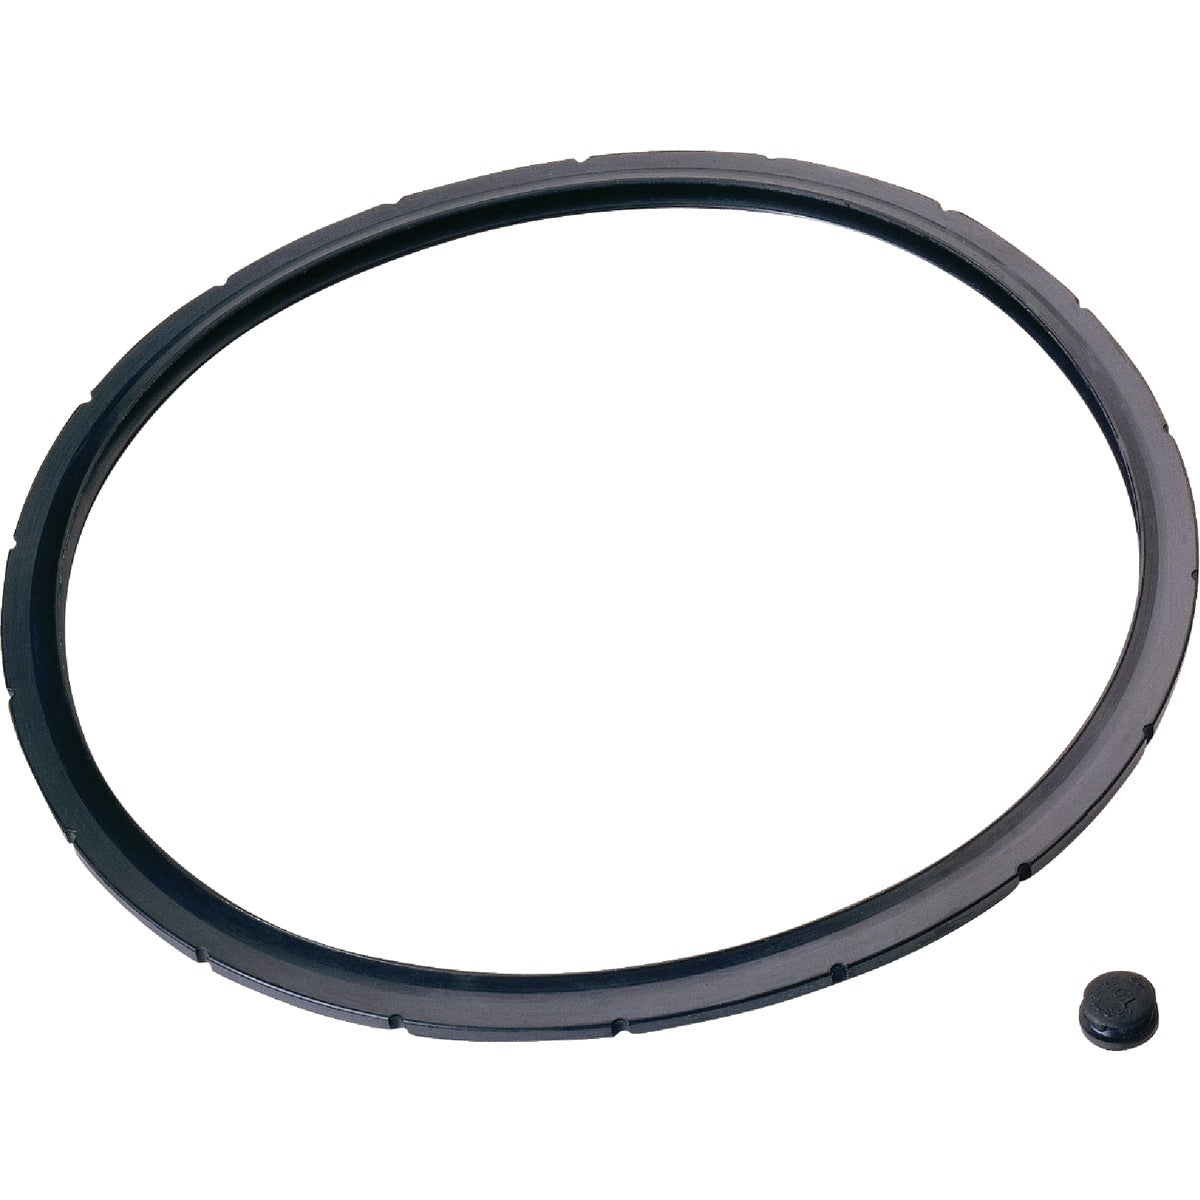 SEALING RING - 09924 by National Presto